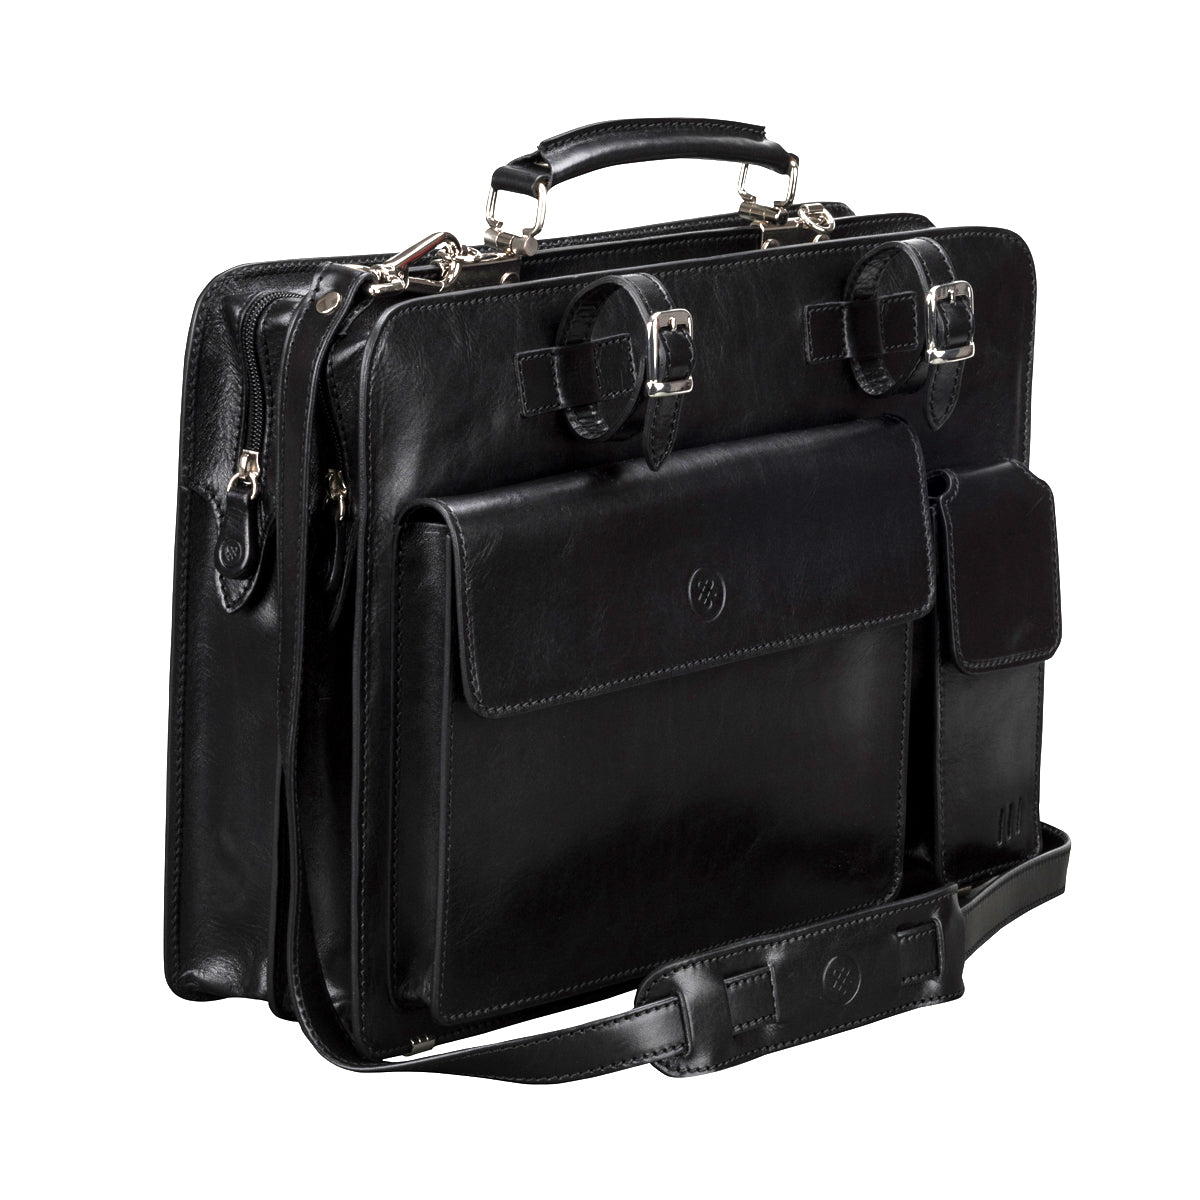 Image 2 of the Alanzo' Black Veg-Tanned Leather Briefcase